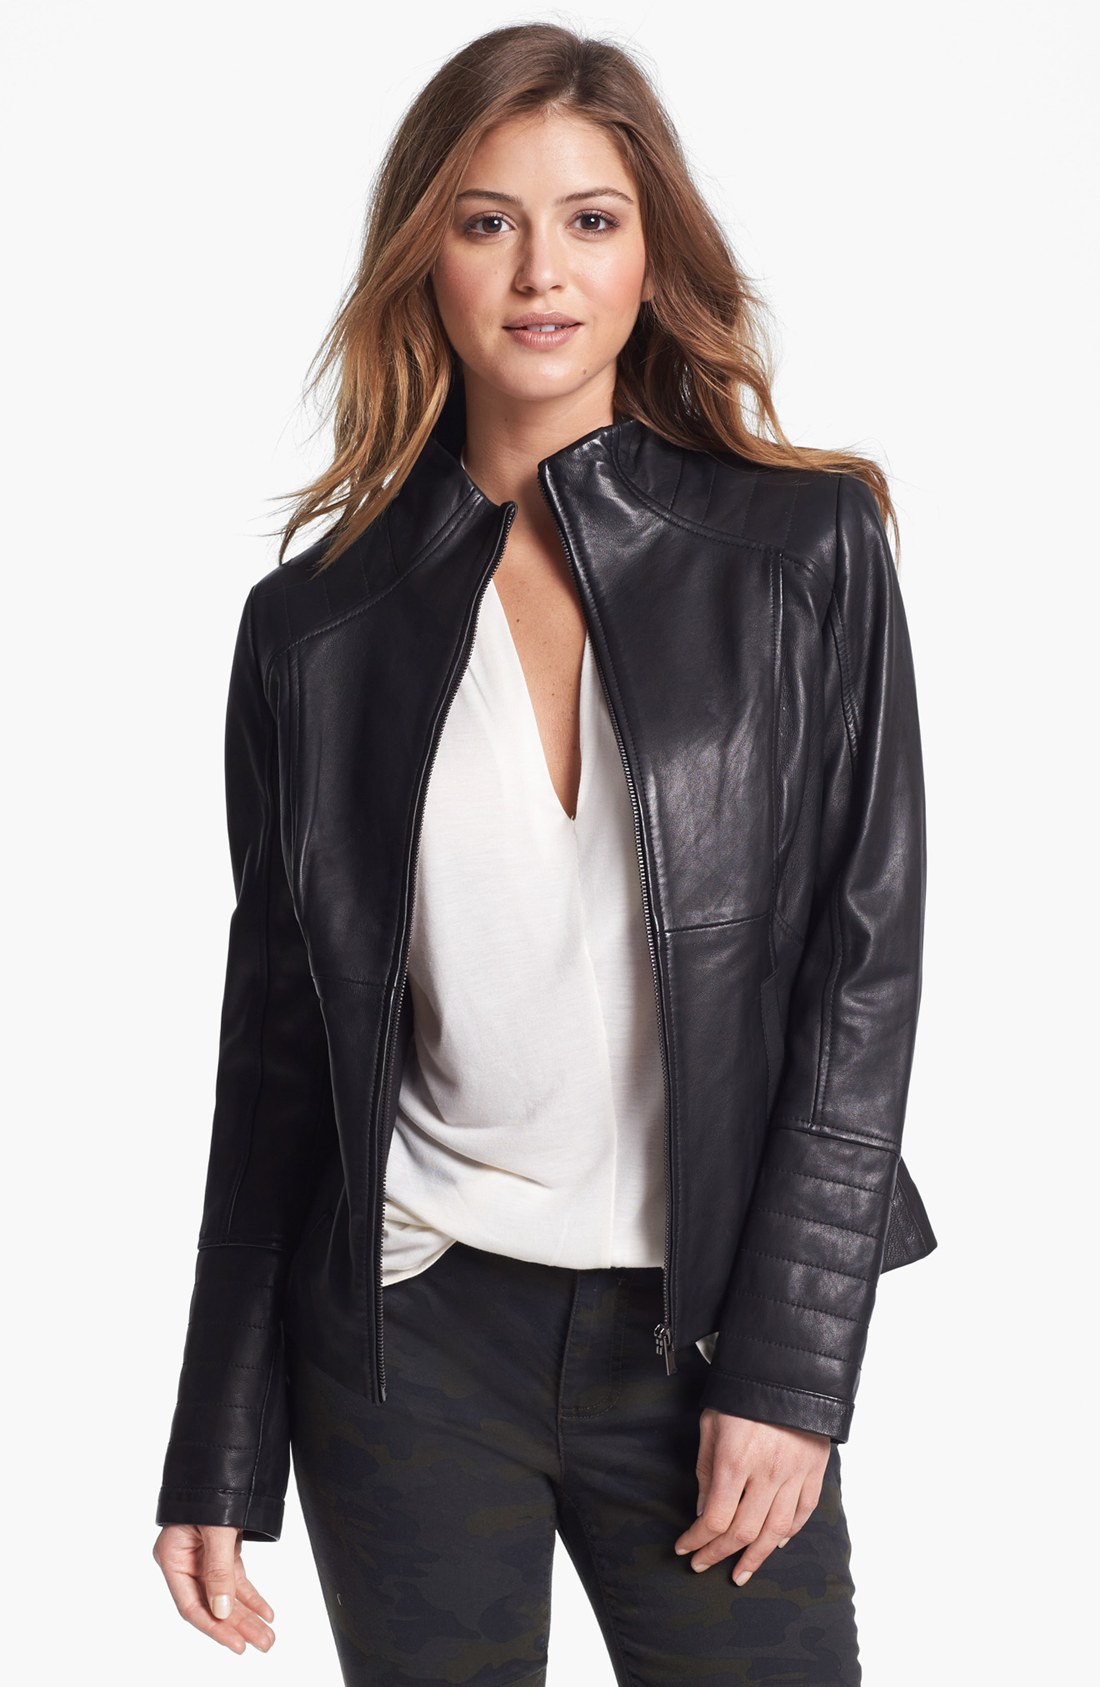 Leather jackets in fashion 32